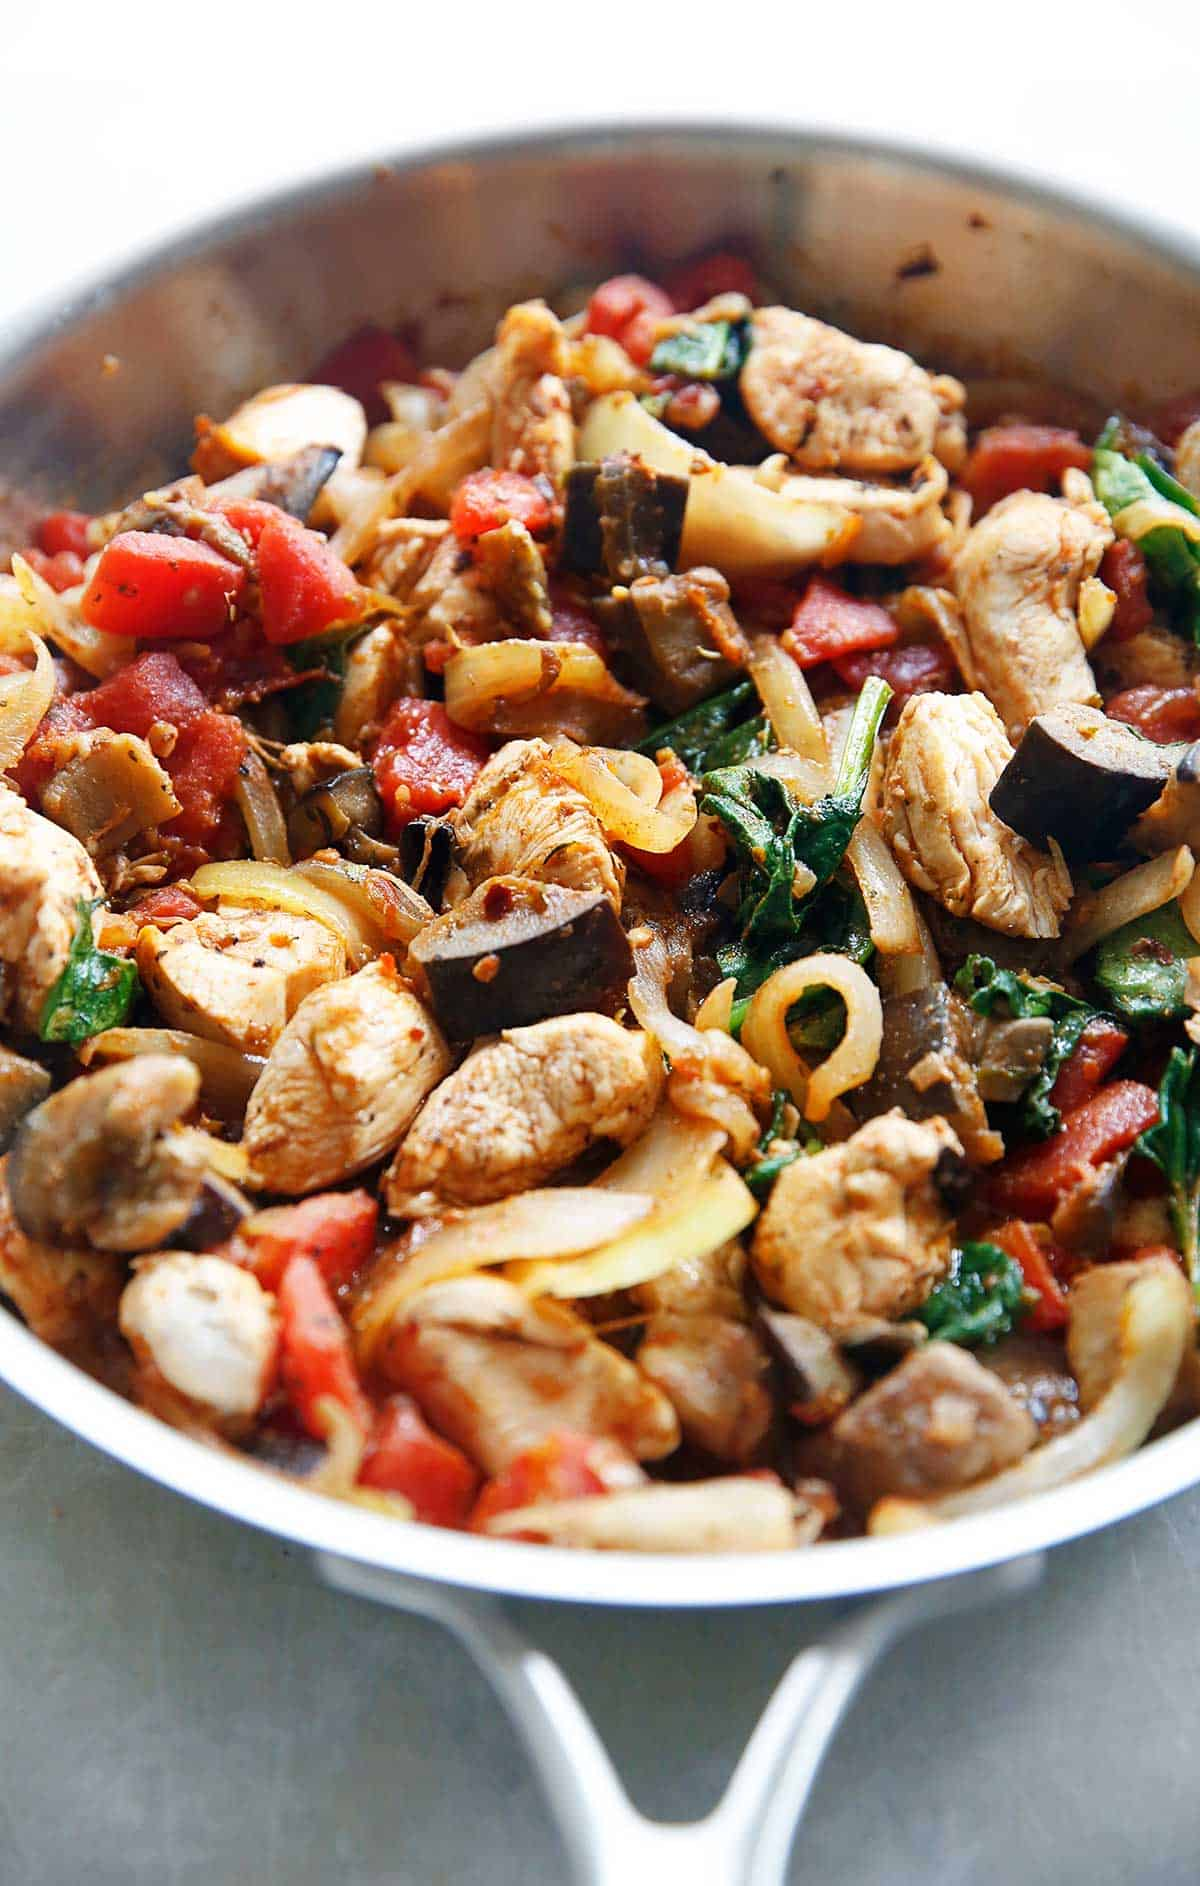 Chicken and eggplant with tomatoes and other veggies in a pan